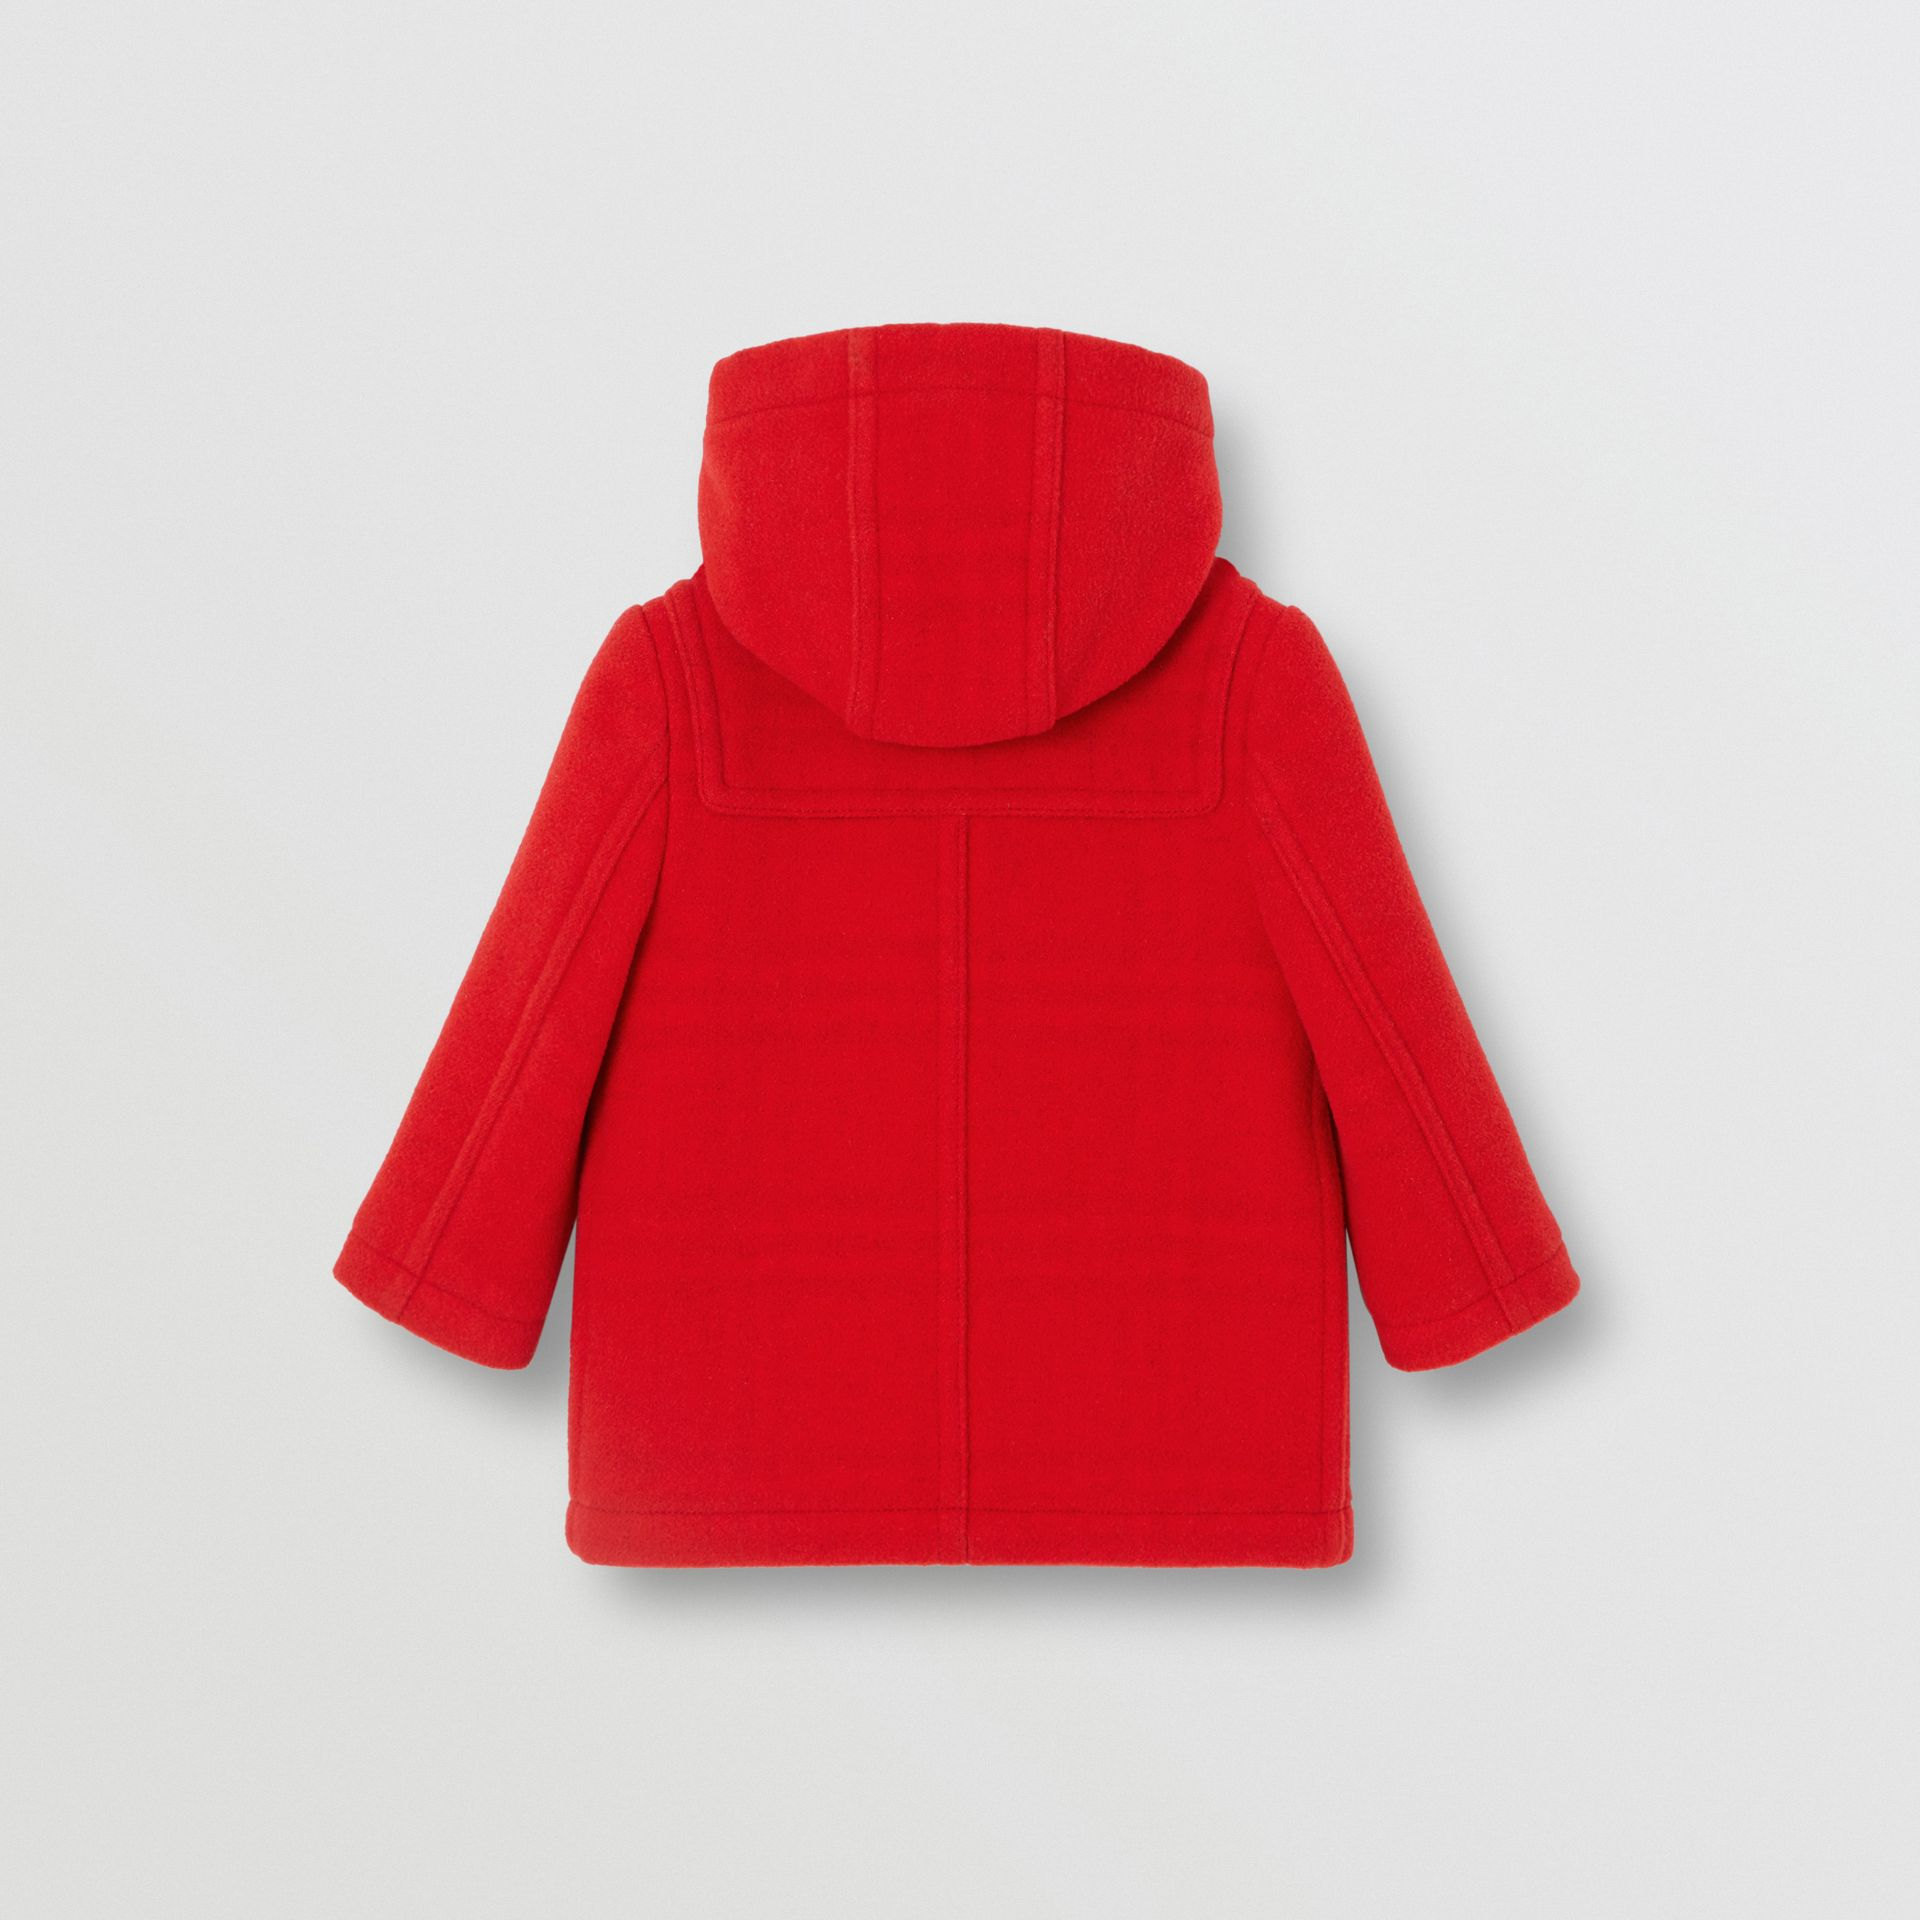 Boiled Wool Duffle Coat in Bright Red - Children | Burberry - gallery image 4